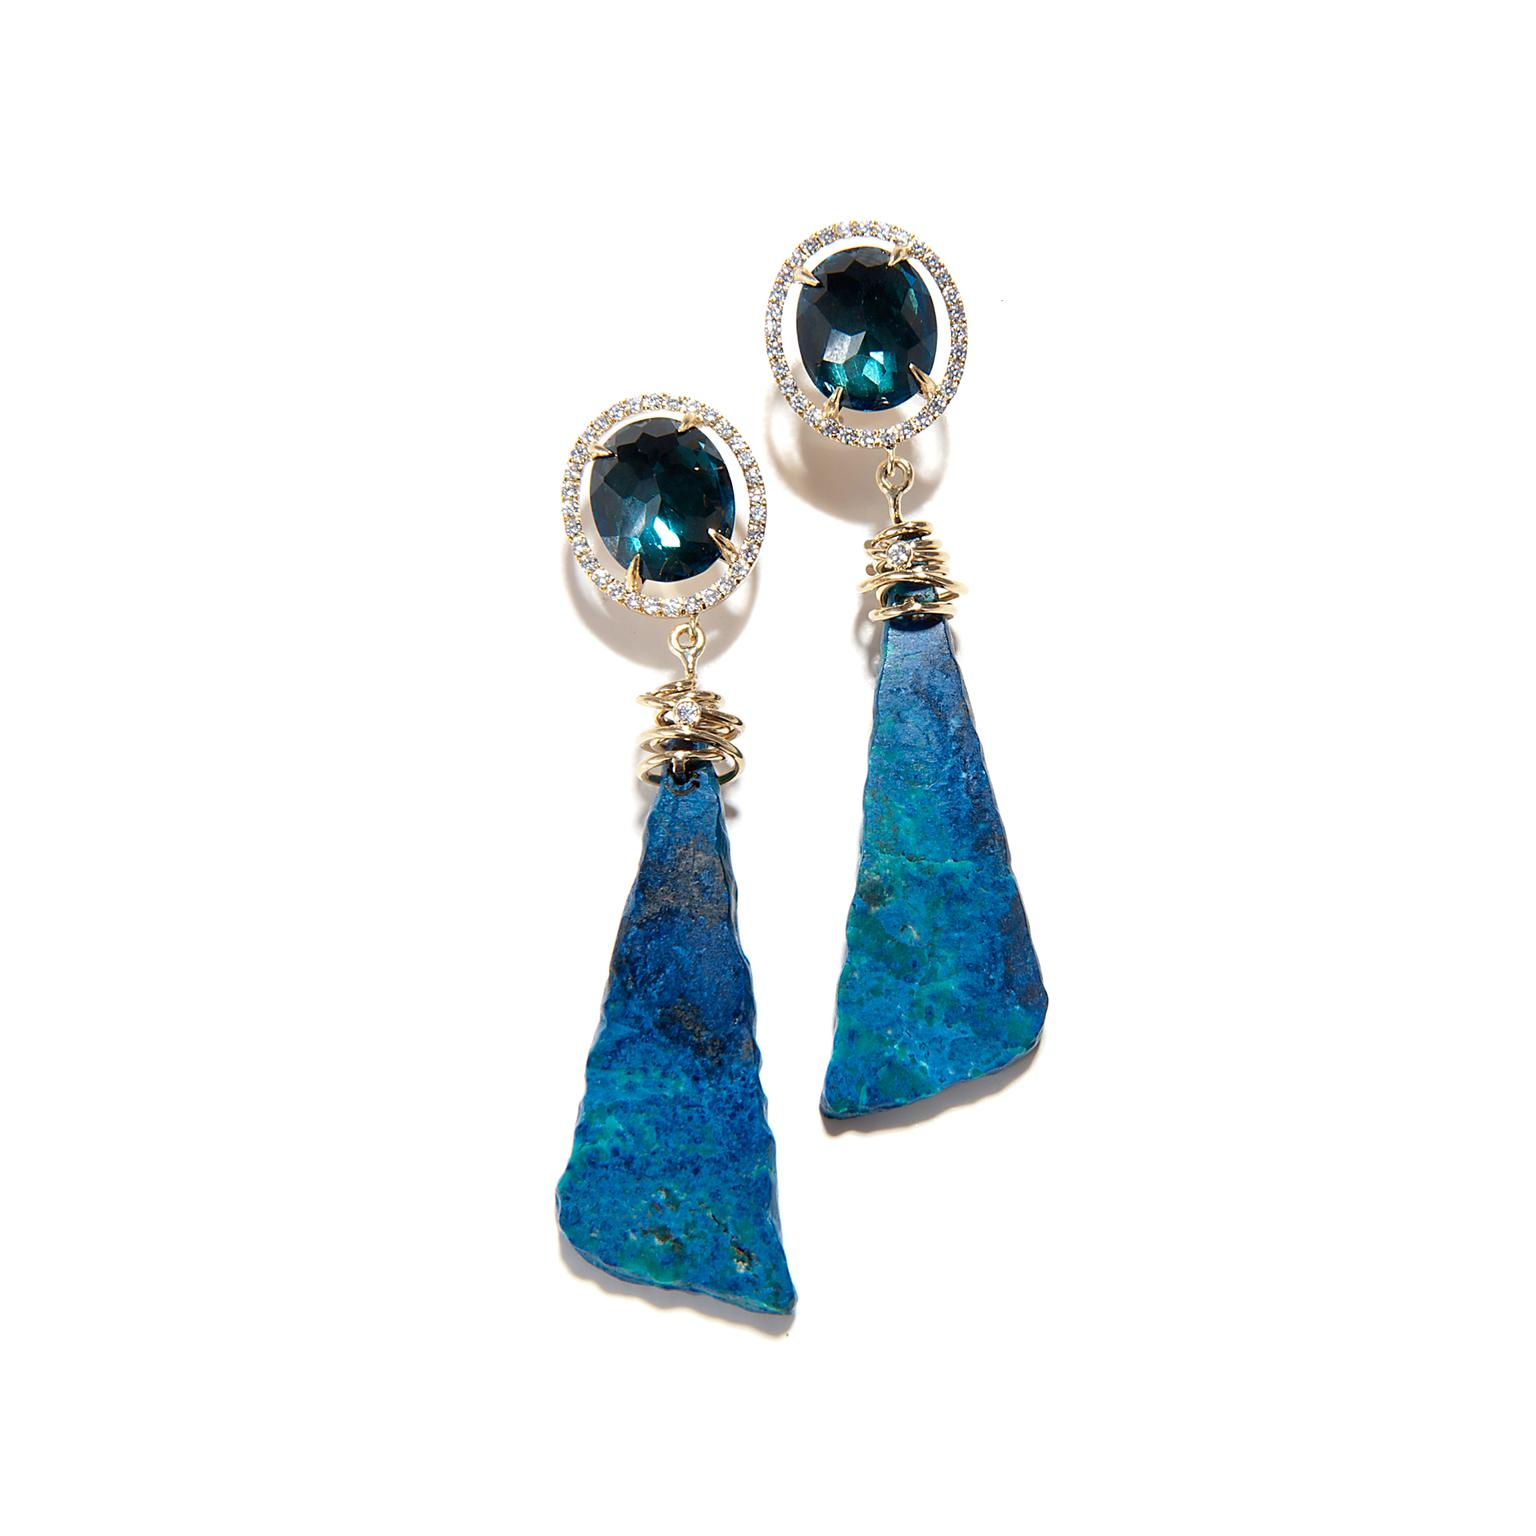 Jordan Alexander blue topaz and azurite earrings